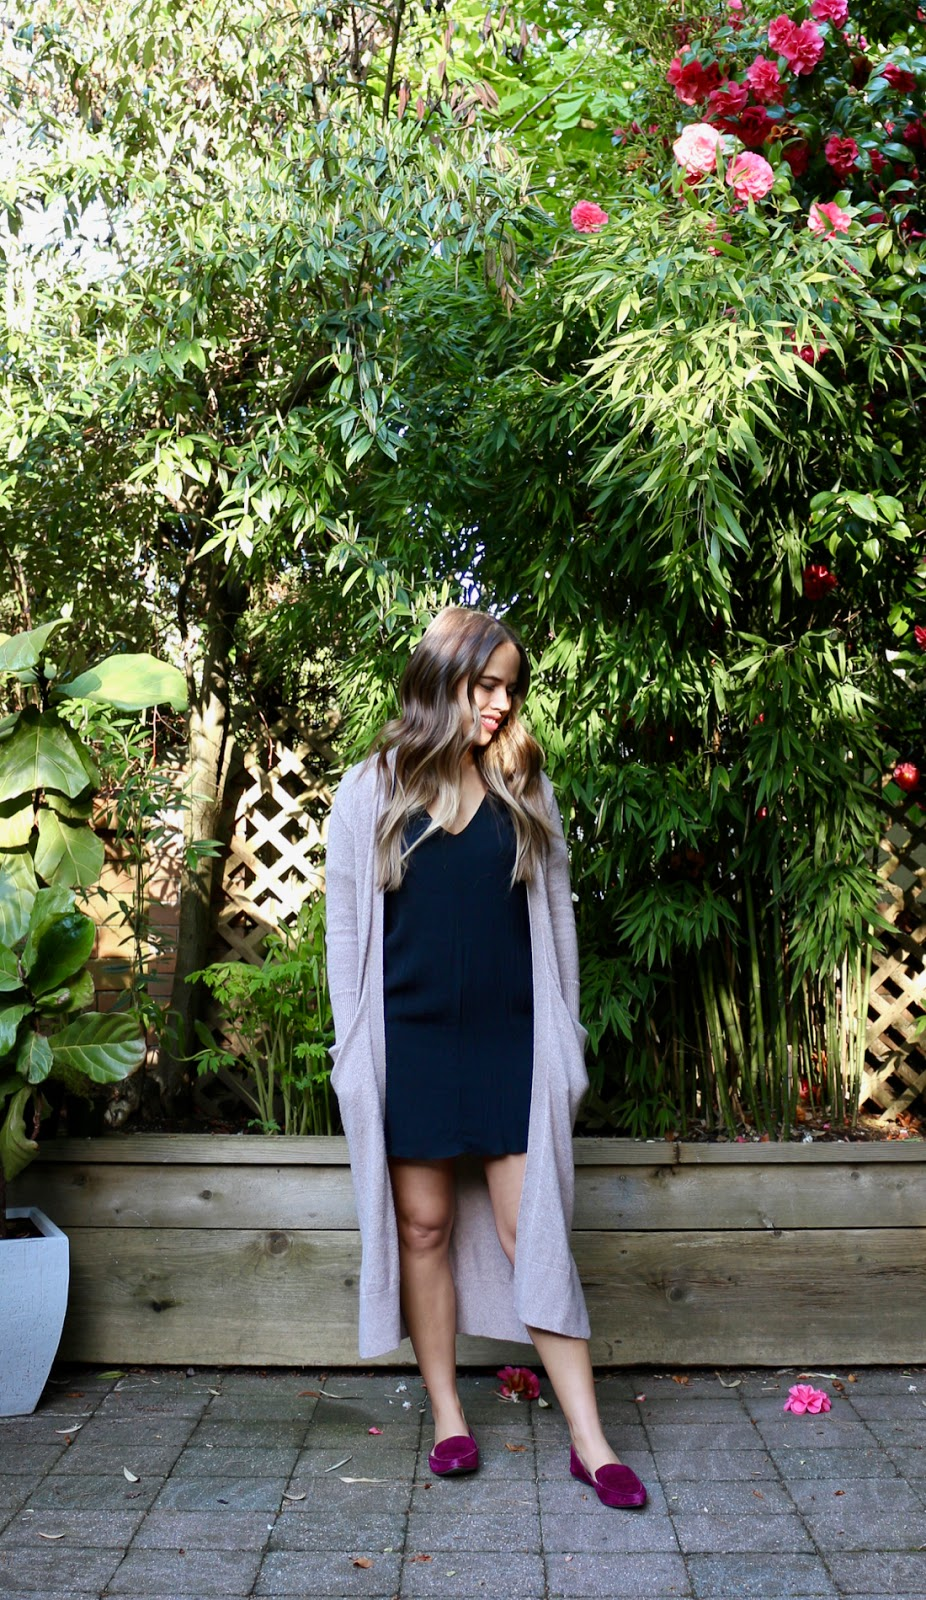 Jules in Flats - Black Shift Dress with Duster Cardigan (Business Casual Spring Workwear on a Budget)